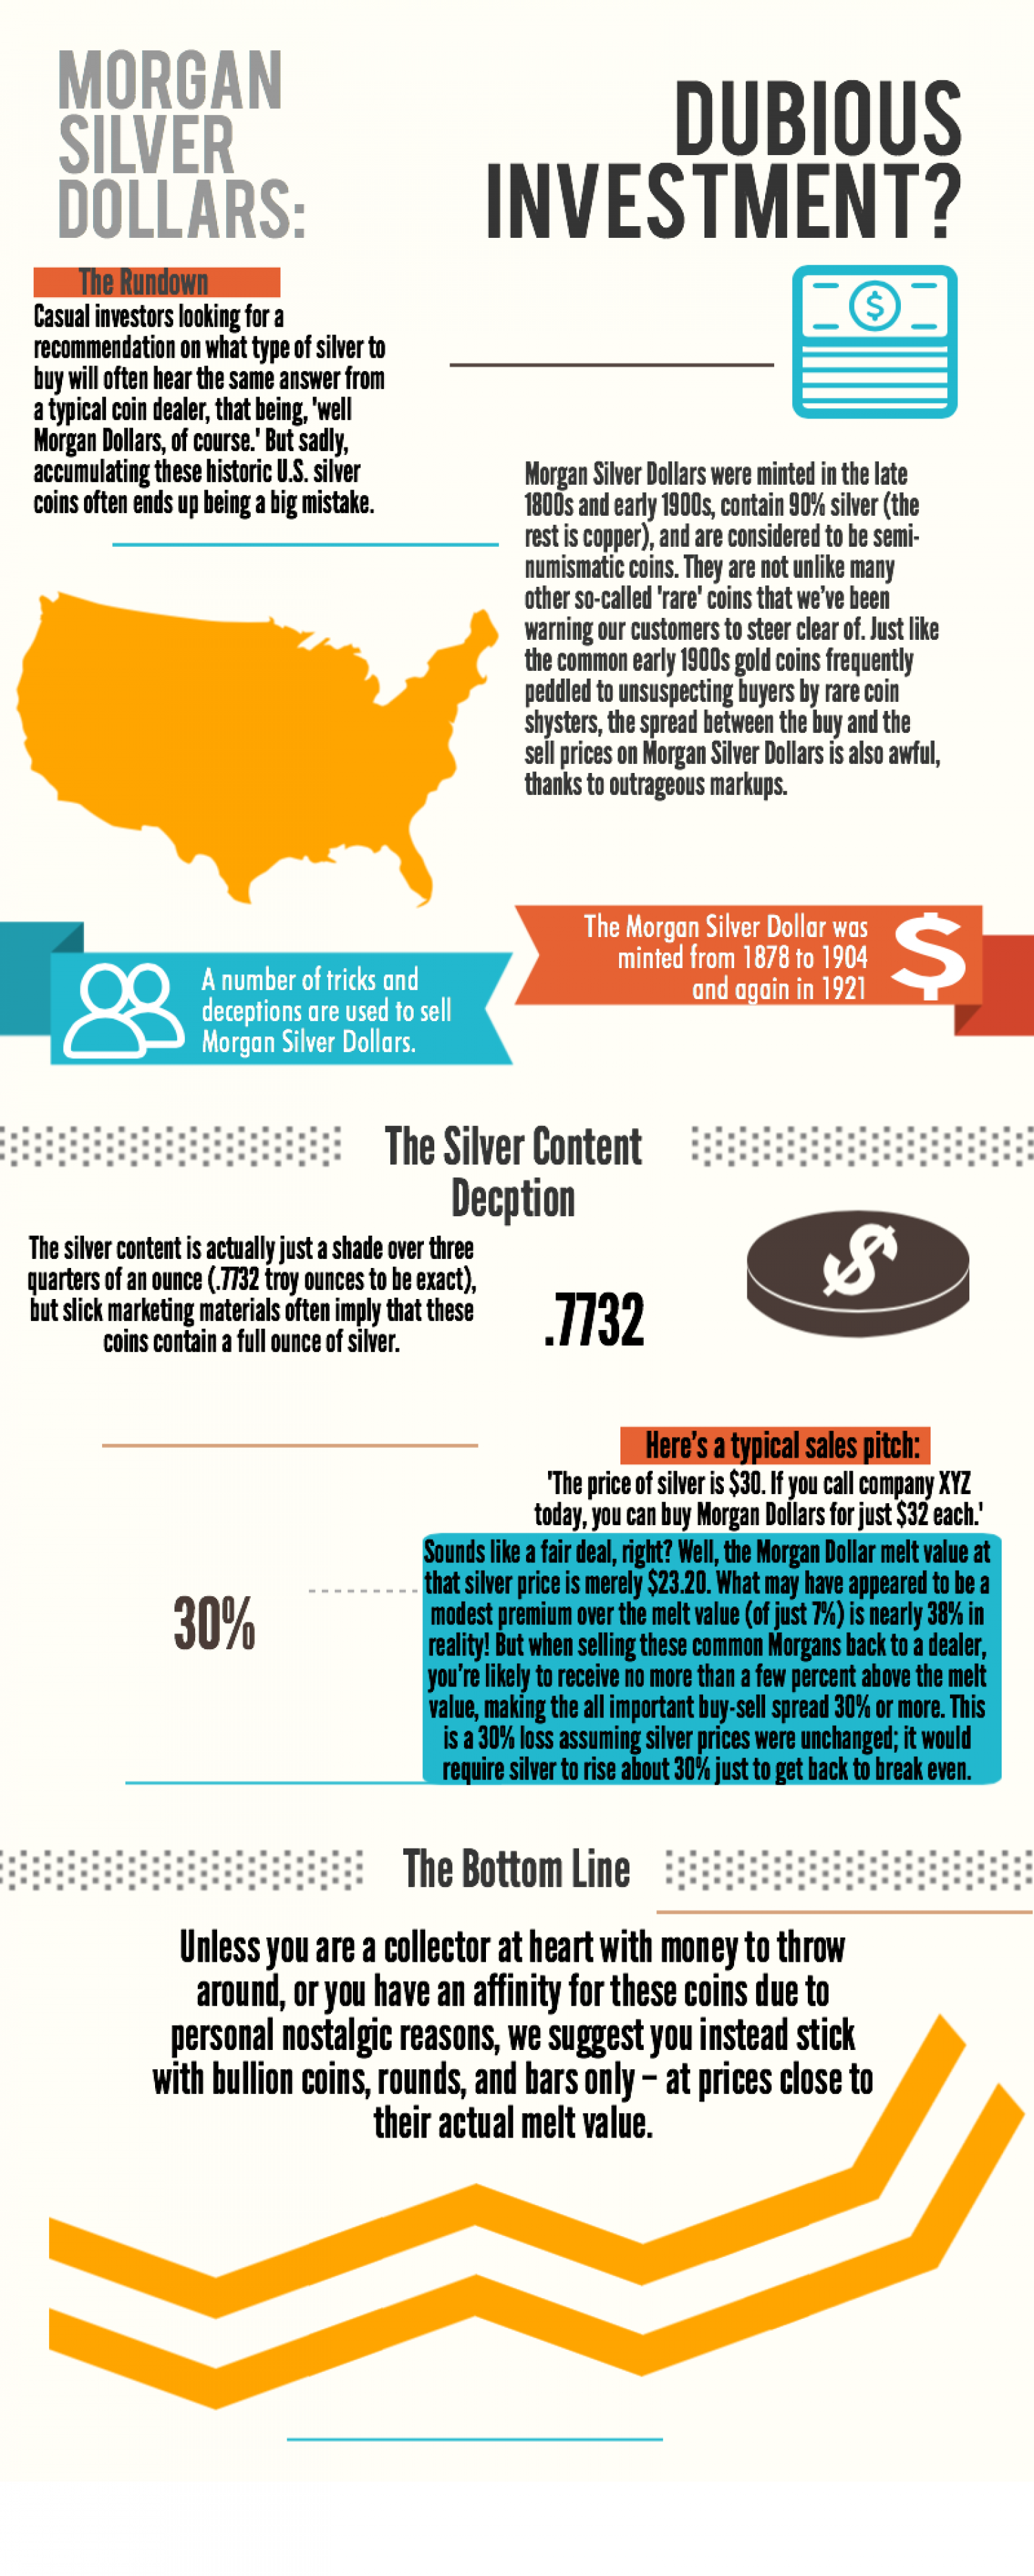 Is It Worth It: Morgan Silver Dollar Infographic